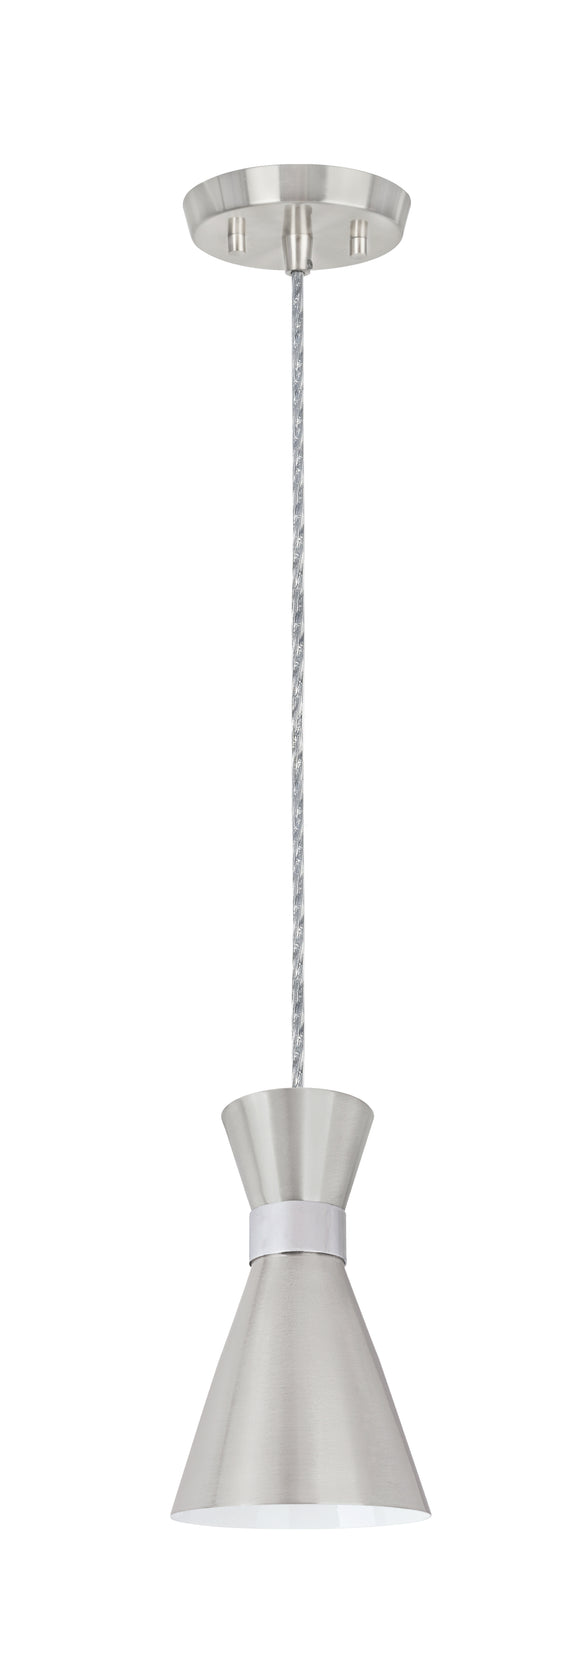 # 61112-11, One-Light Hanging Mini Pendant Ceiling Light, Transitional Design in Satin Nickel & Chrome Finish, 5